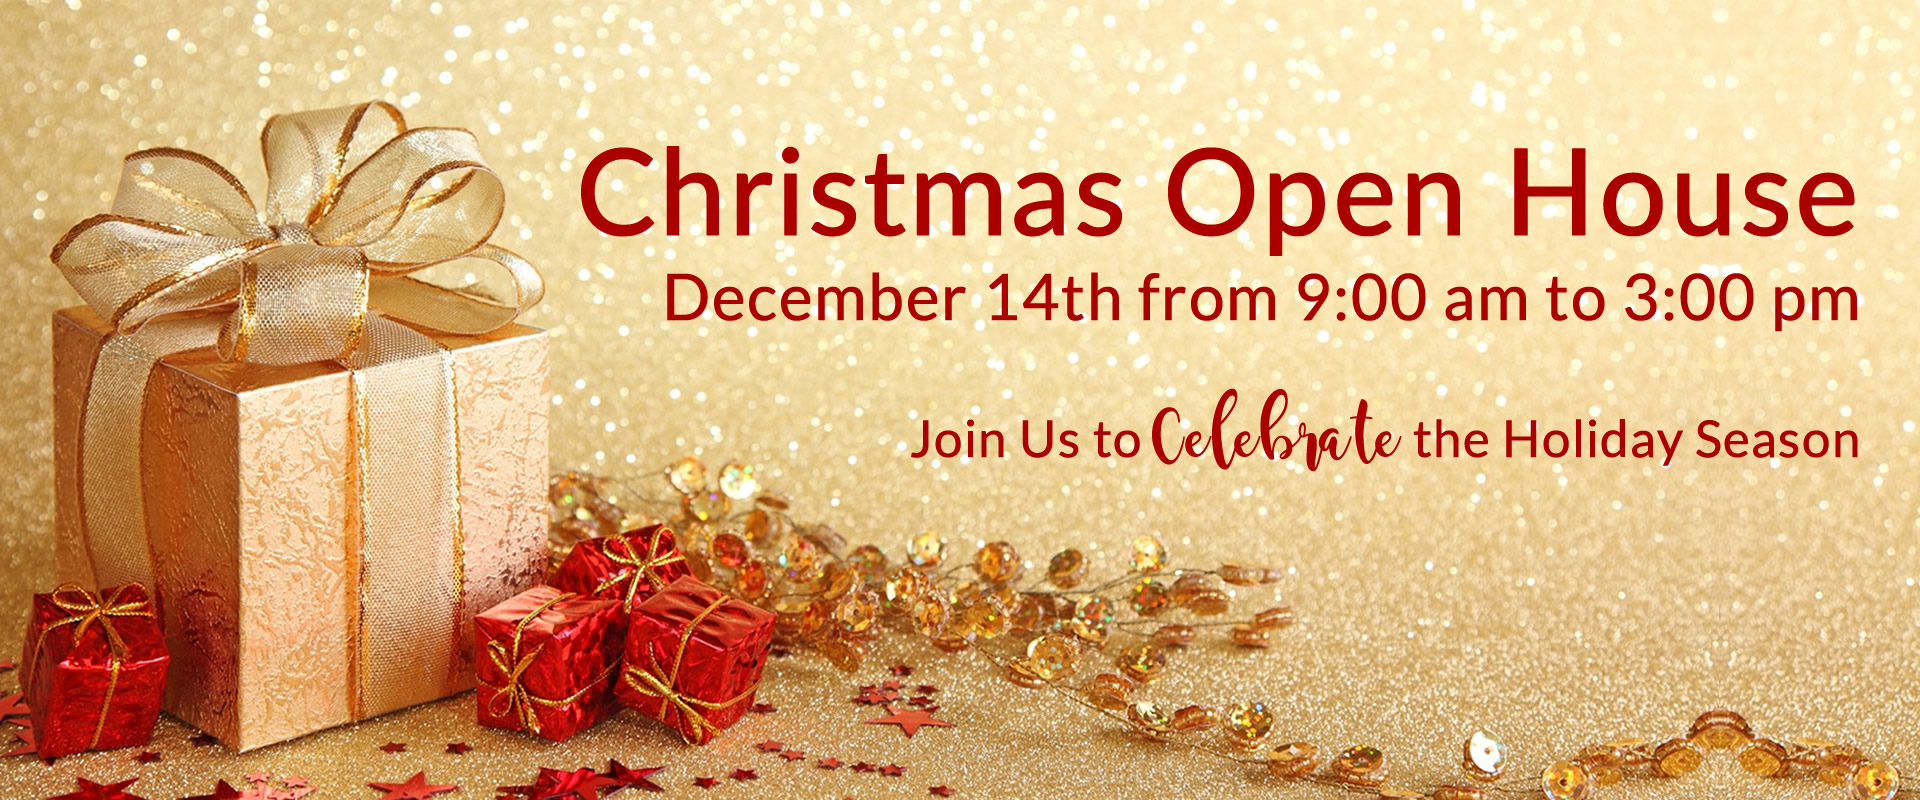 Christmas Open House on December 14 from 9 am to 3 pm.